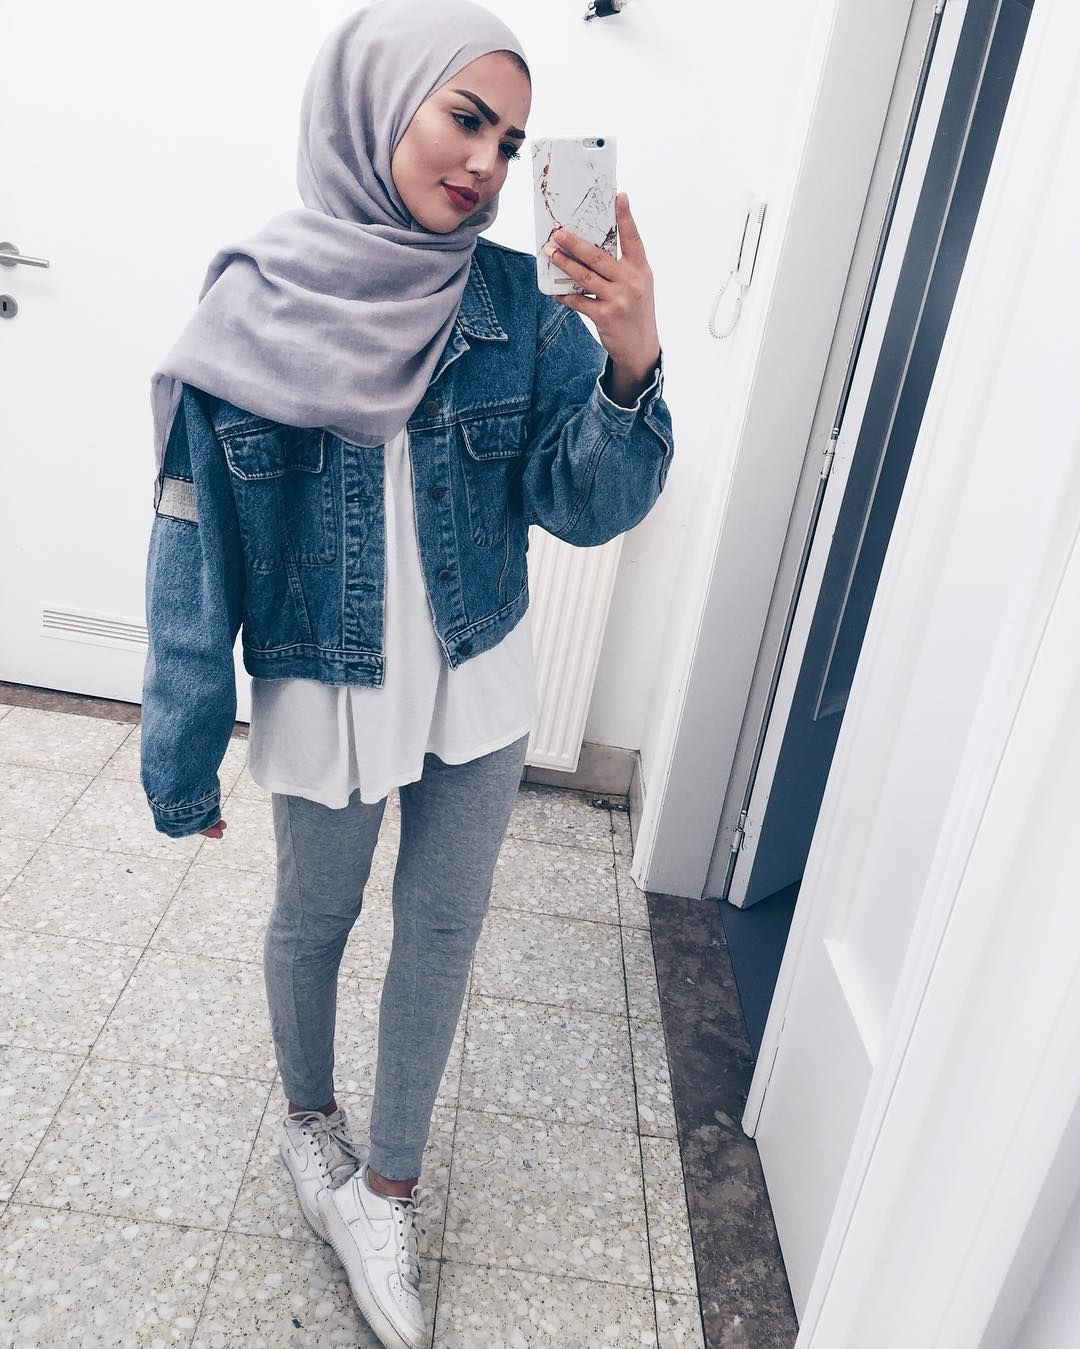 Comfiest Outfit Sweatpants Fashion Pinterest Mode Hijab Femme Hijab Et Tenue